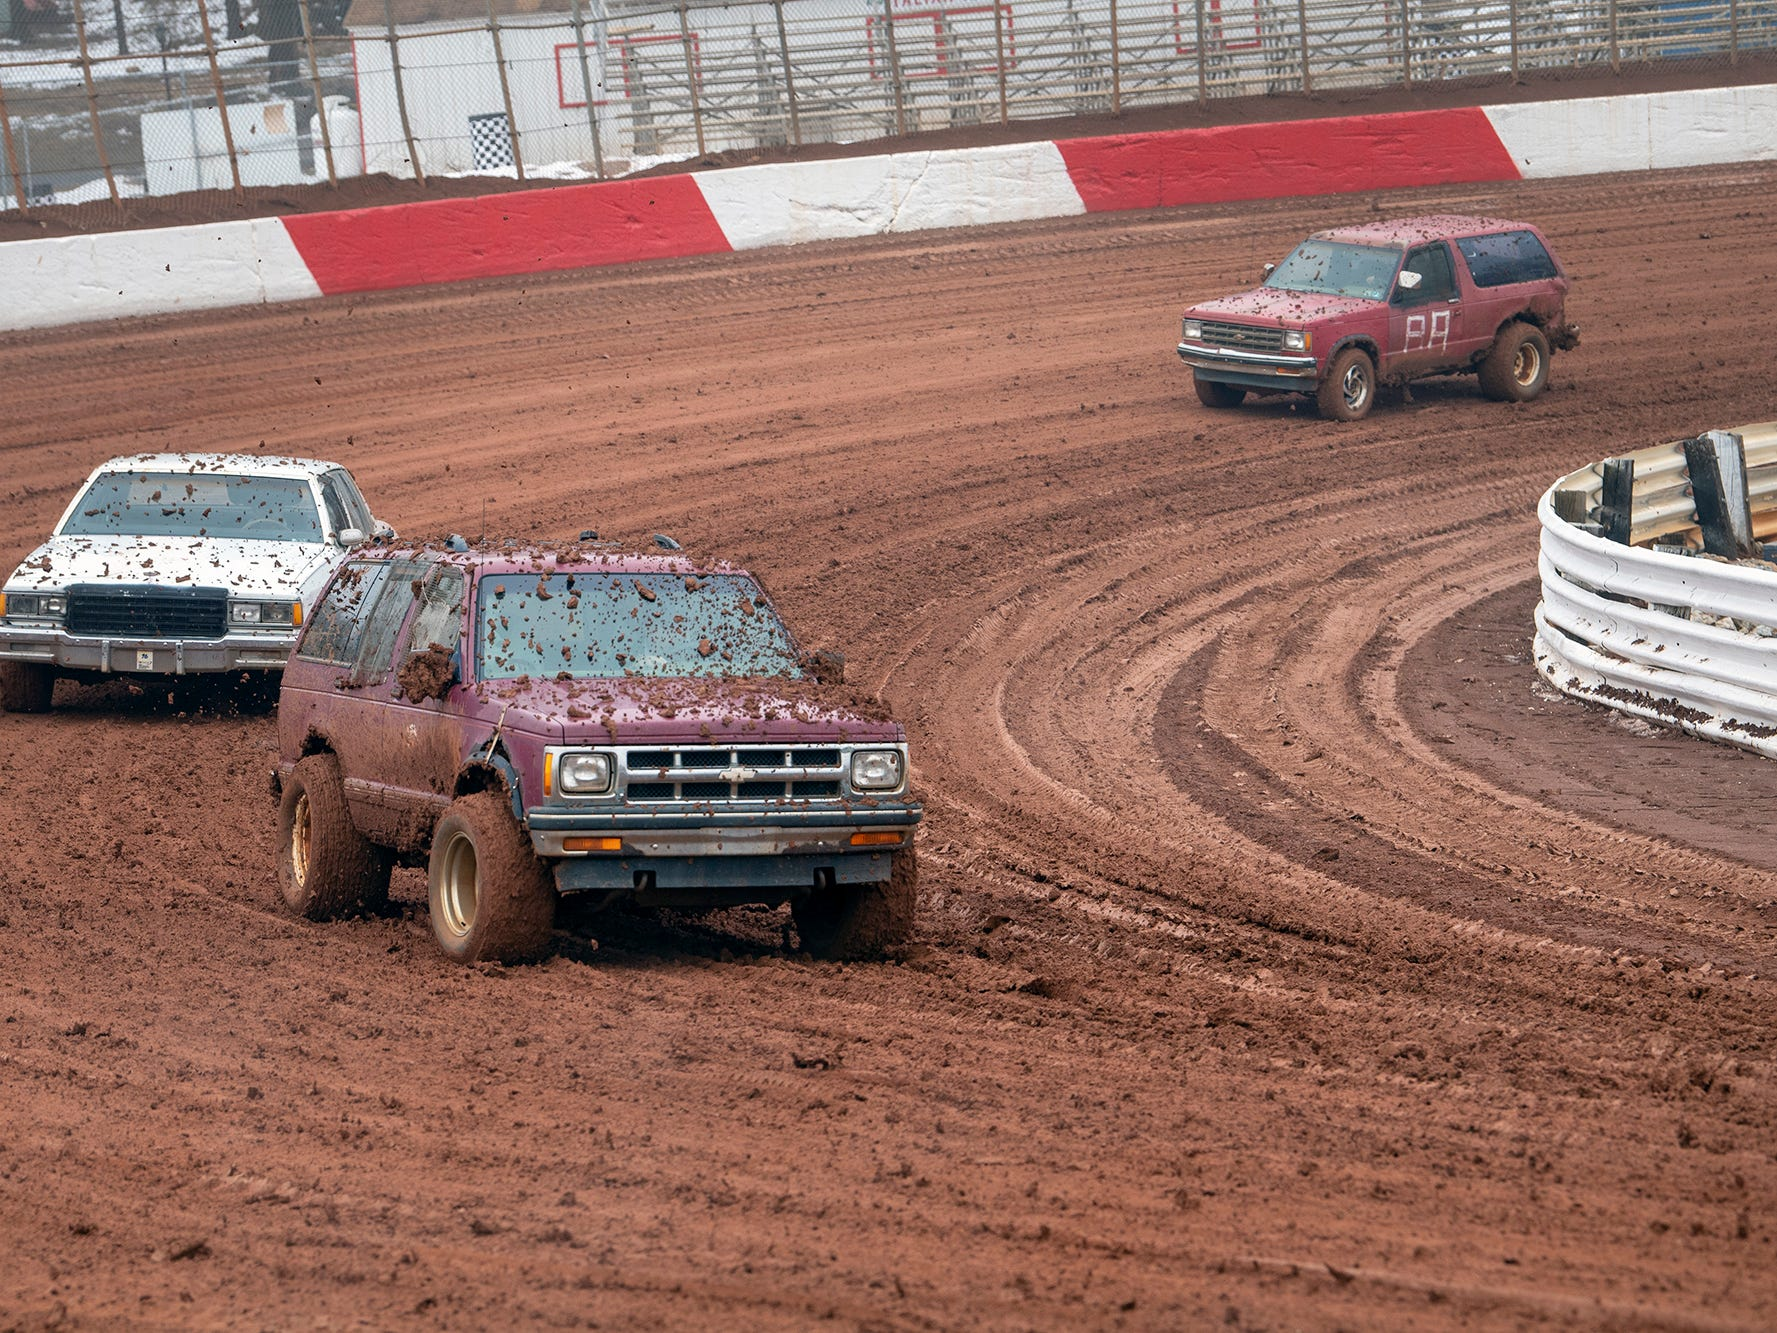 Vehicles with fat tires were used to condition the track prior to Sunday's Lincoln Speedway Ice Breaker 30.